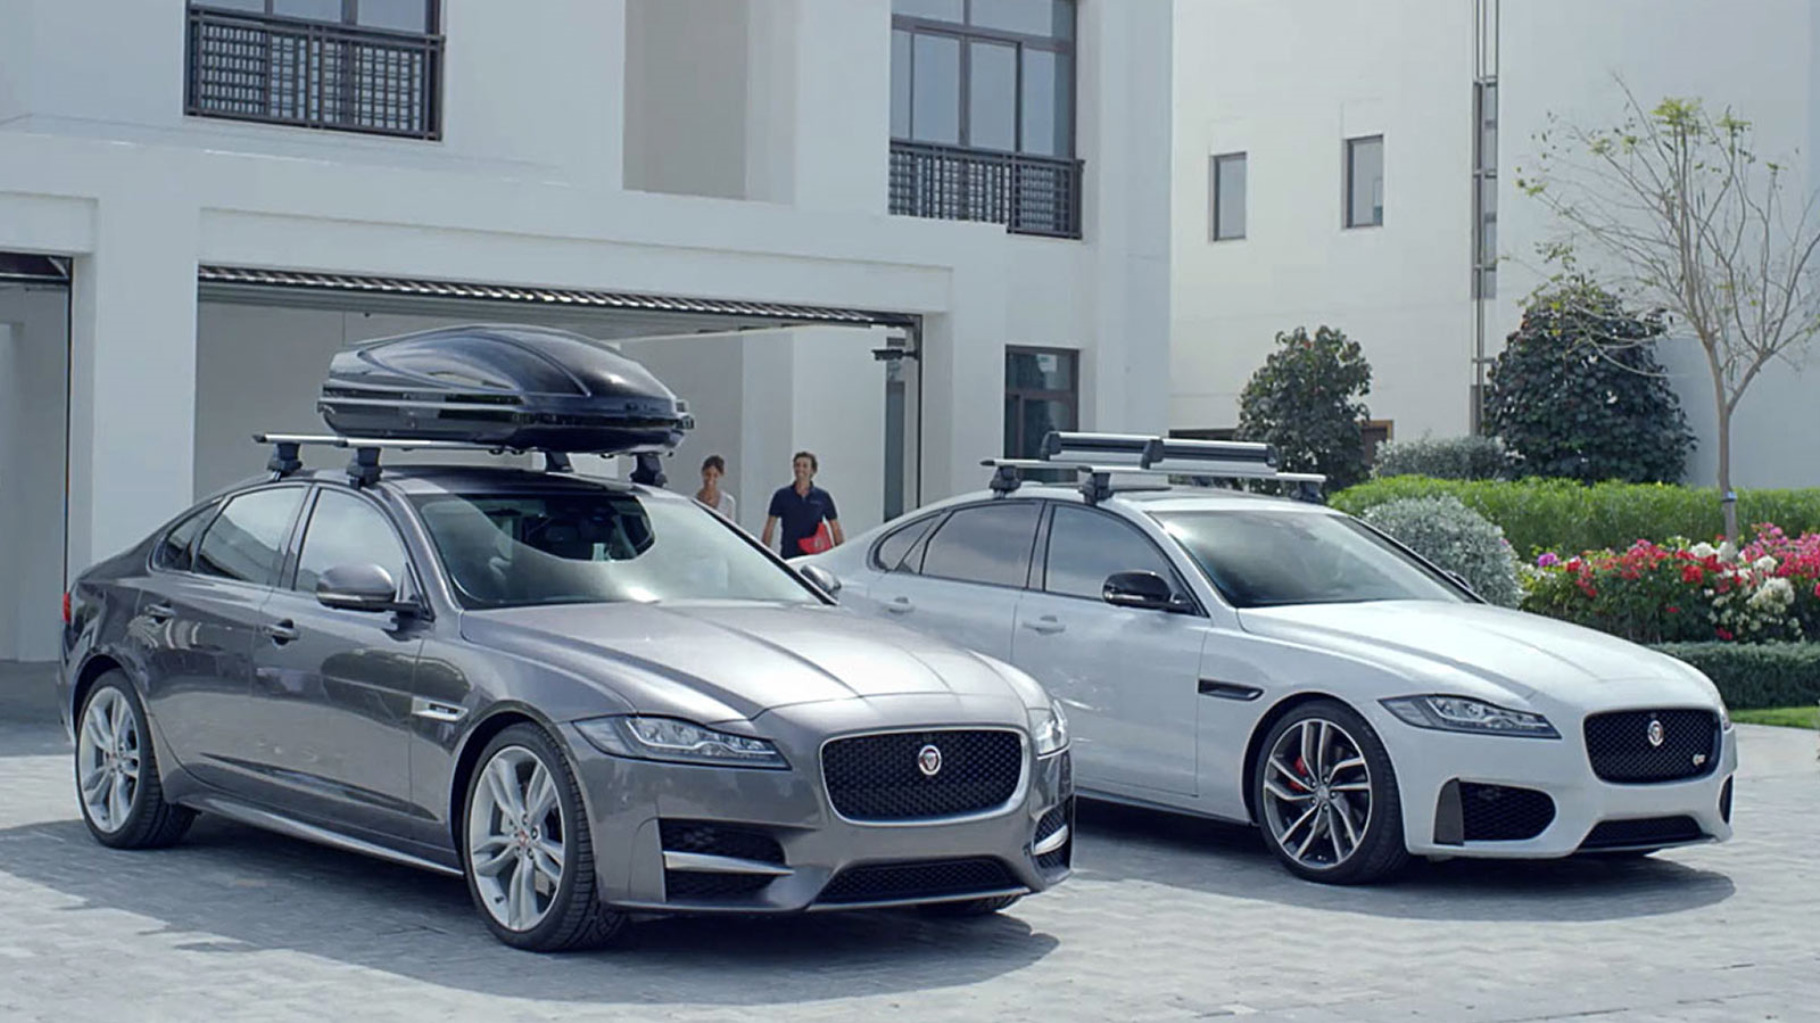 Two Jaguar XF Saloons parked with fitted accessories.